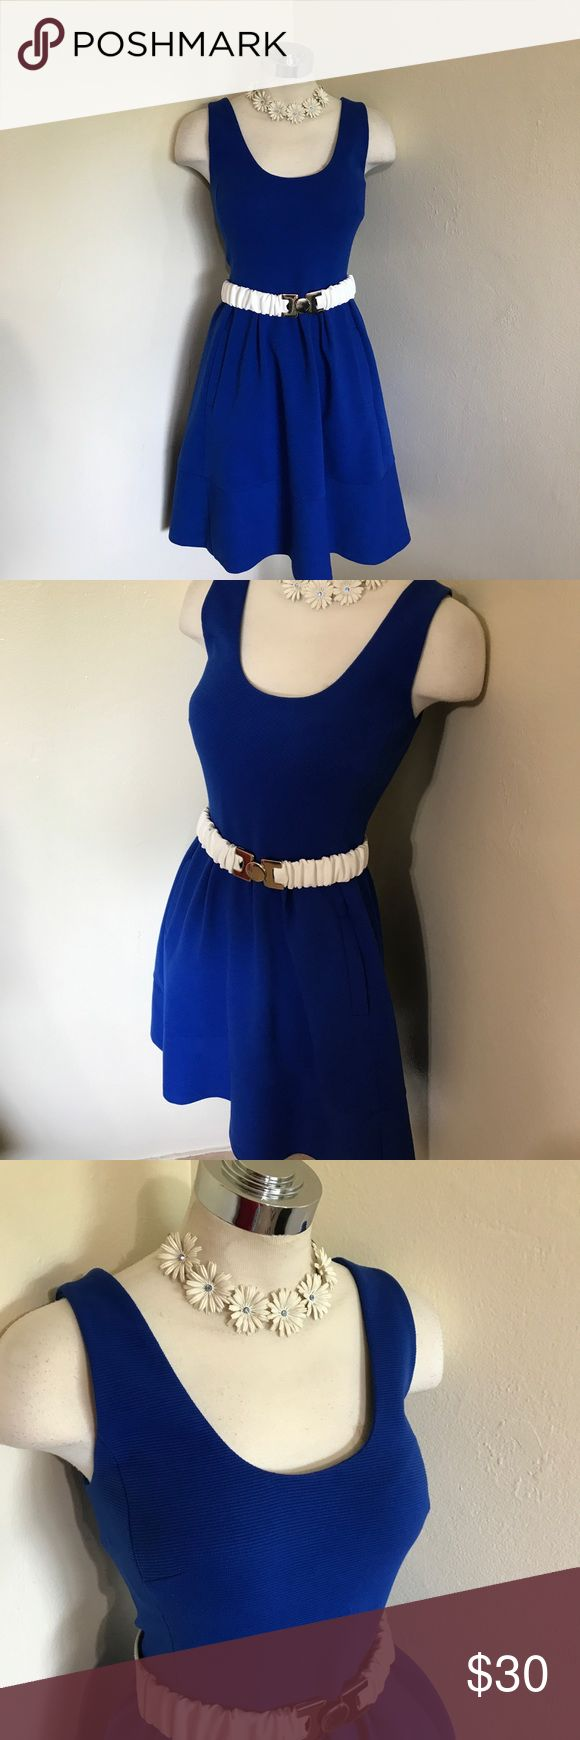 Banana Republic Blue Ribbed Knit Summer Dress 6 M Label-Banana Republic Style- sleeveless, with scoop neck tank style top over a full inverted pleated skirt, pockets in folds, exposed gold zip up back. Pretty and Lady like on a summer day. Unlined  Size-6 Shown on a 2 5'8 mannequin and pinned. Falls just above knee.  Measurements-B-36 W-28 Hip-Full Shoulder to hem-36 Color-Cobalt Blue Fabric- Mid-weight Ribbed Poly Cotton Knit Condition-Lightly if ever worn Origin-China Banana Republic…